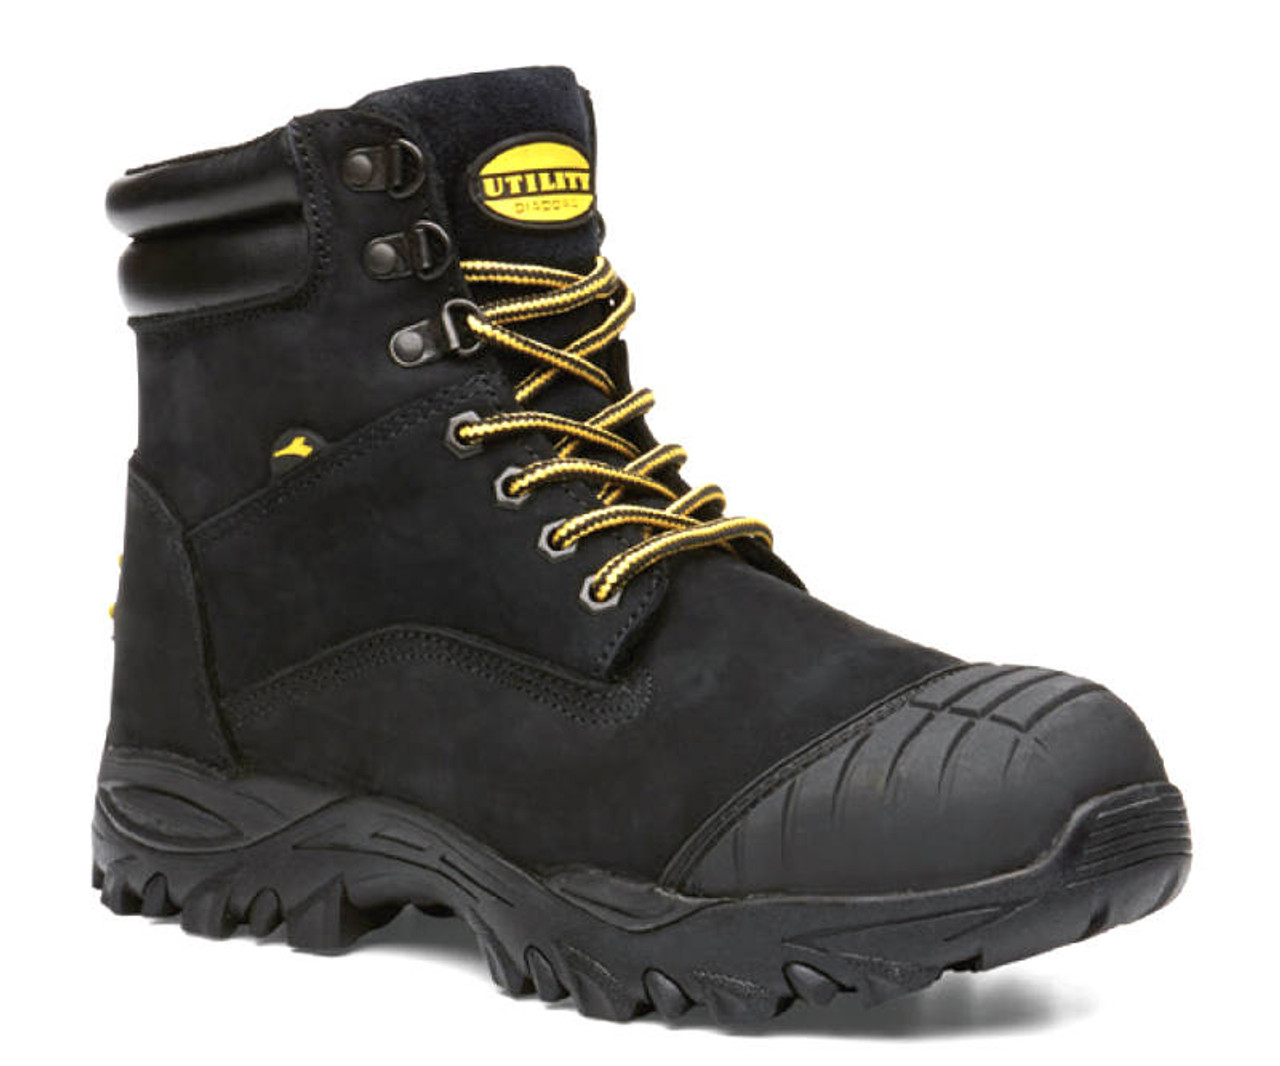 eb15e334 Diadora Craze - Kevlar Insole Water Resistant Leather Safety Boots ...